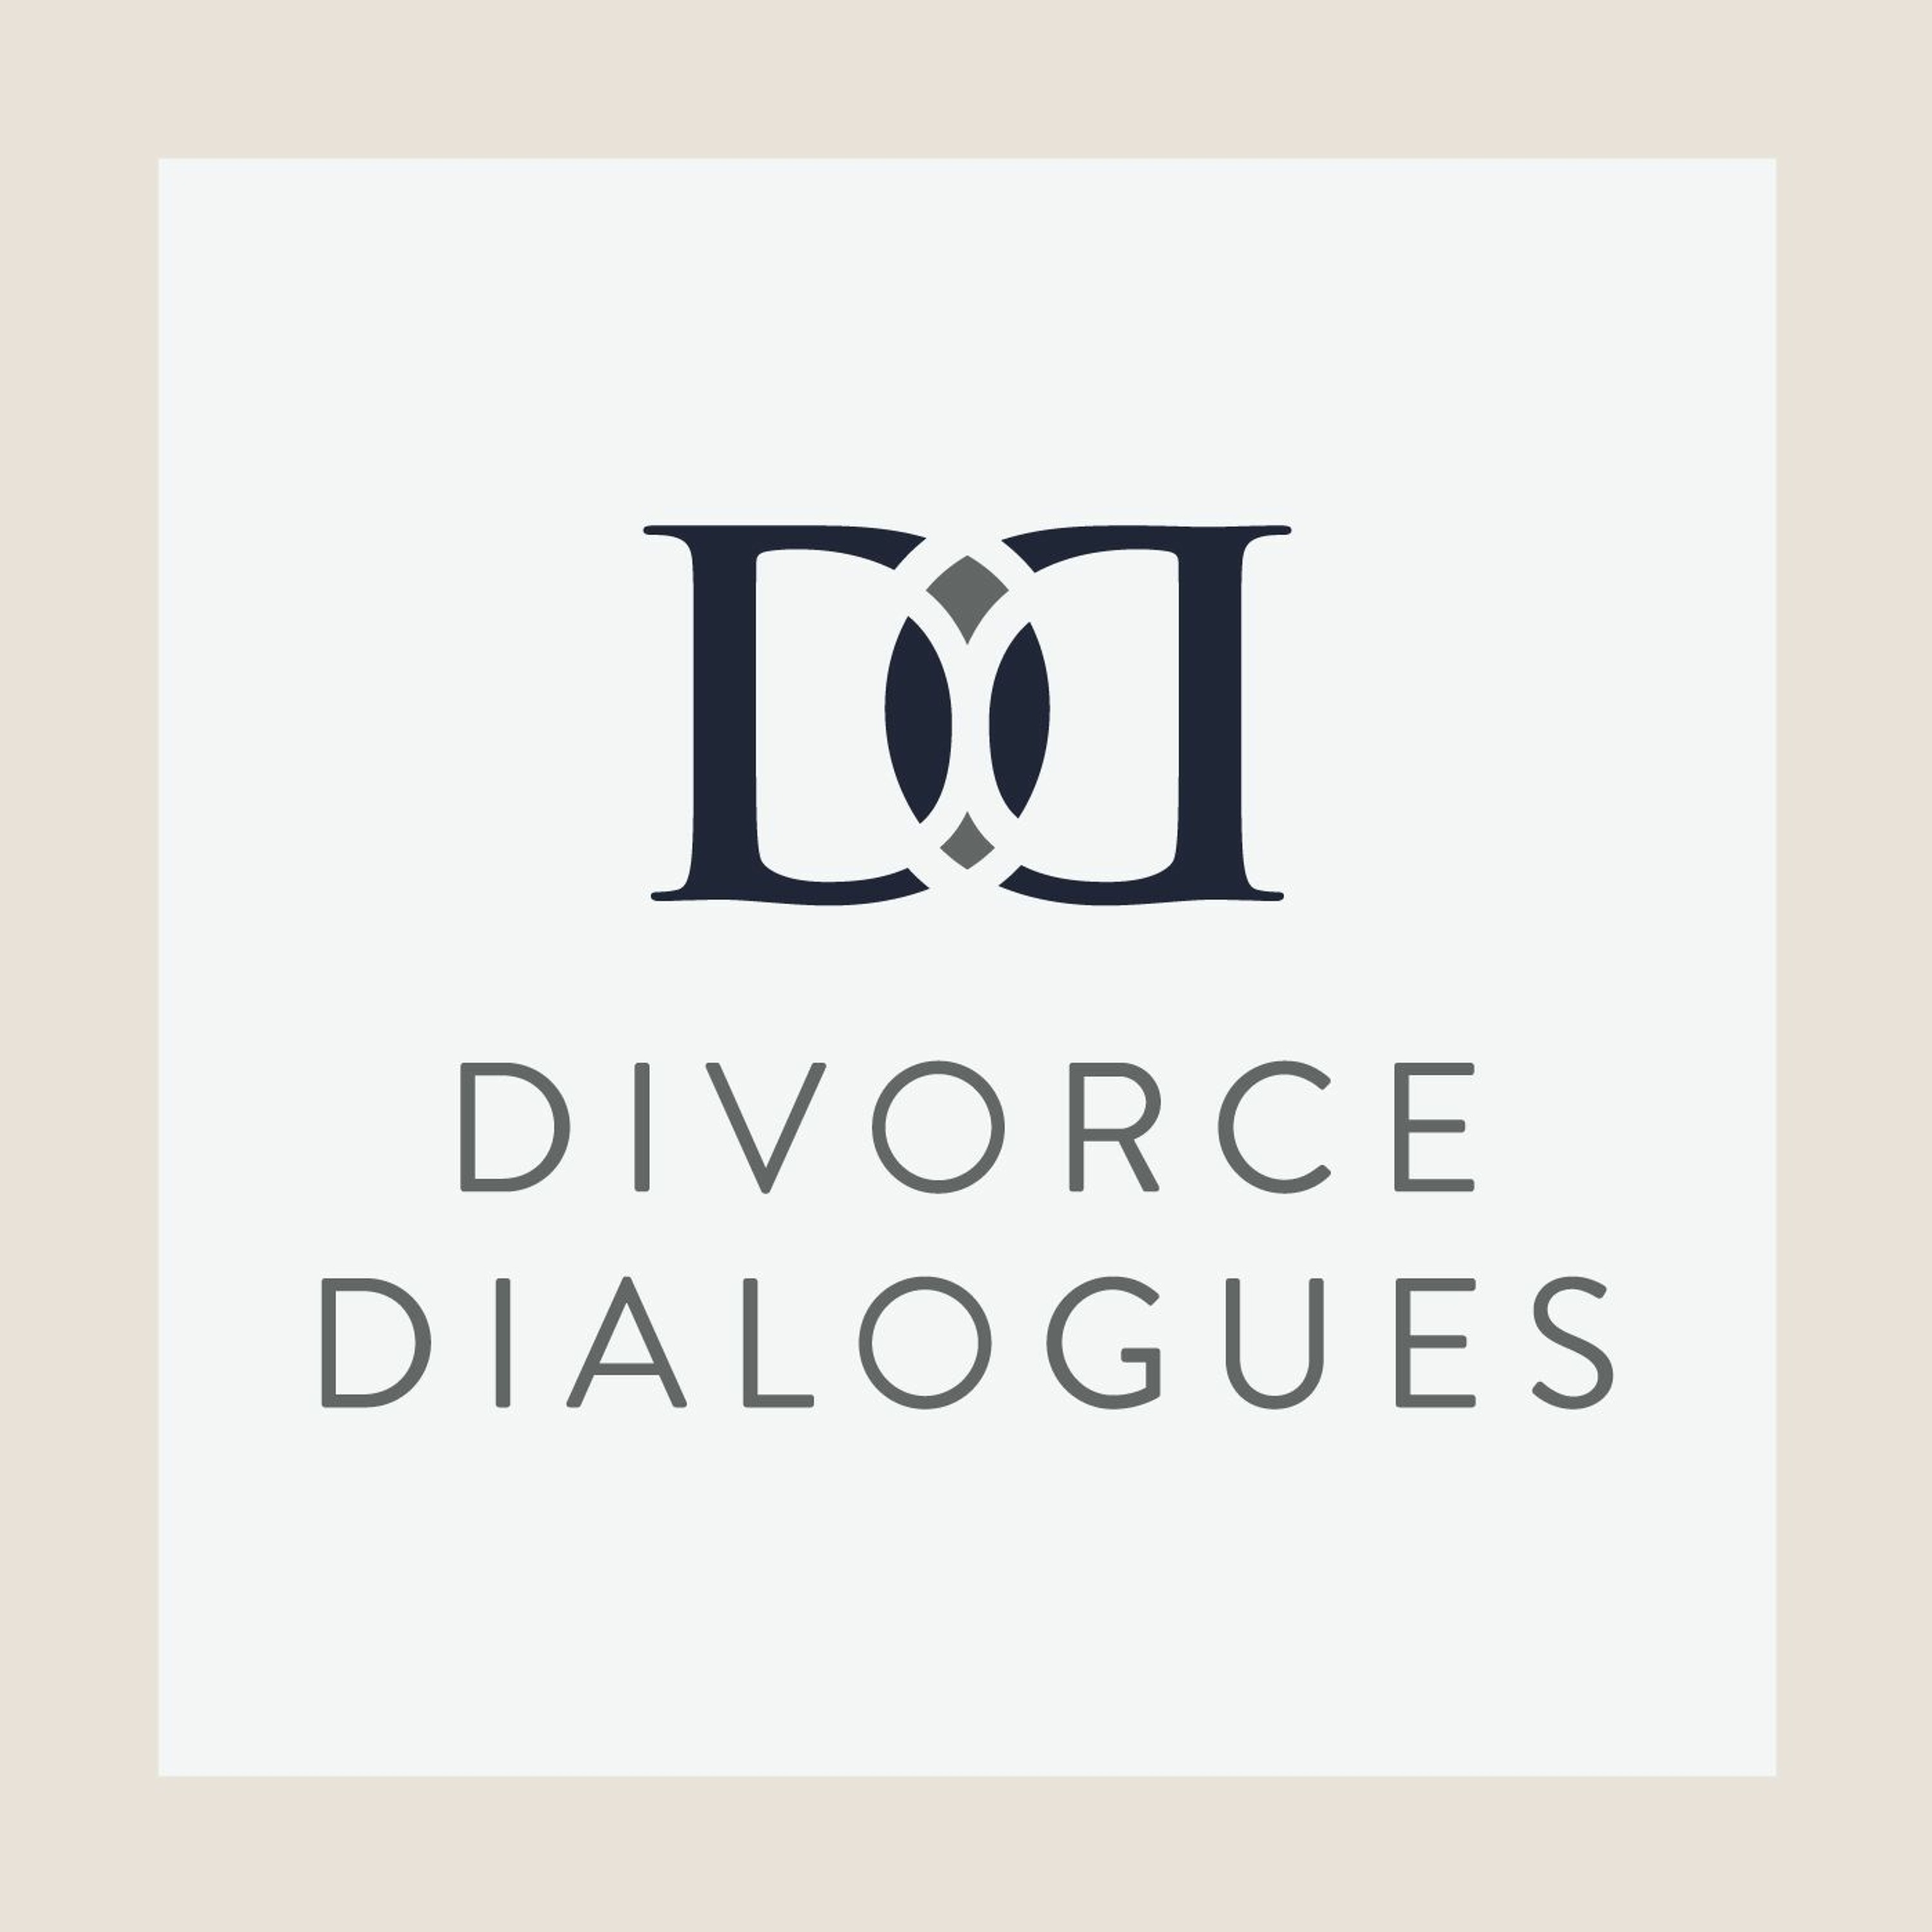 Divorce Dialogues - A Better Way to Divorce Through the Collaborative Model with Sue Brunsting, Esq.